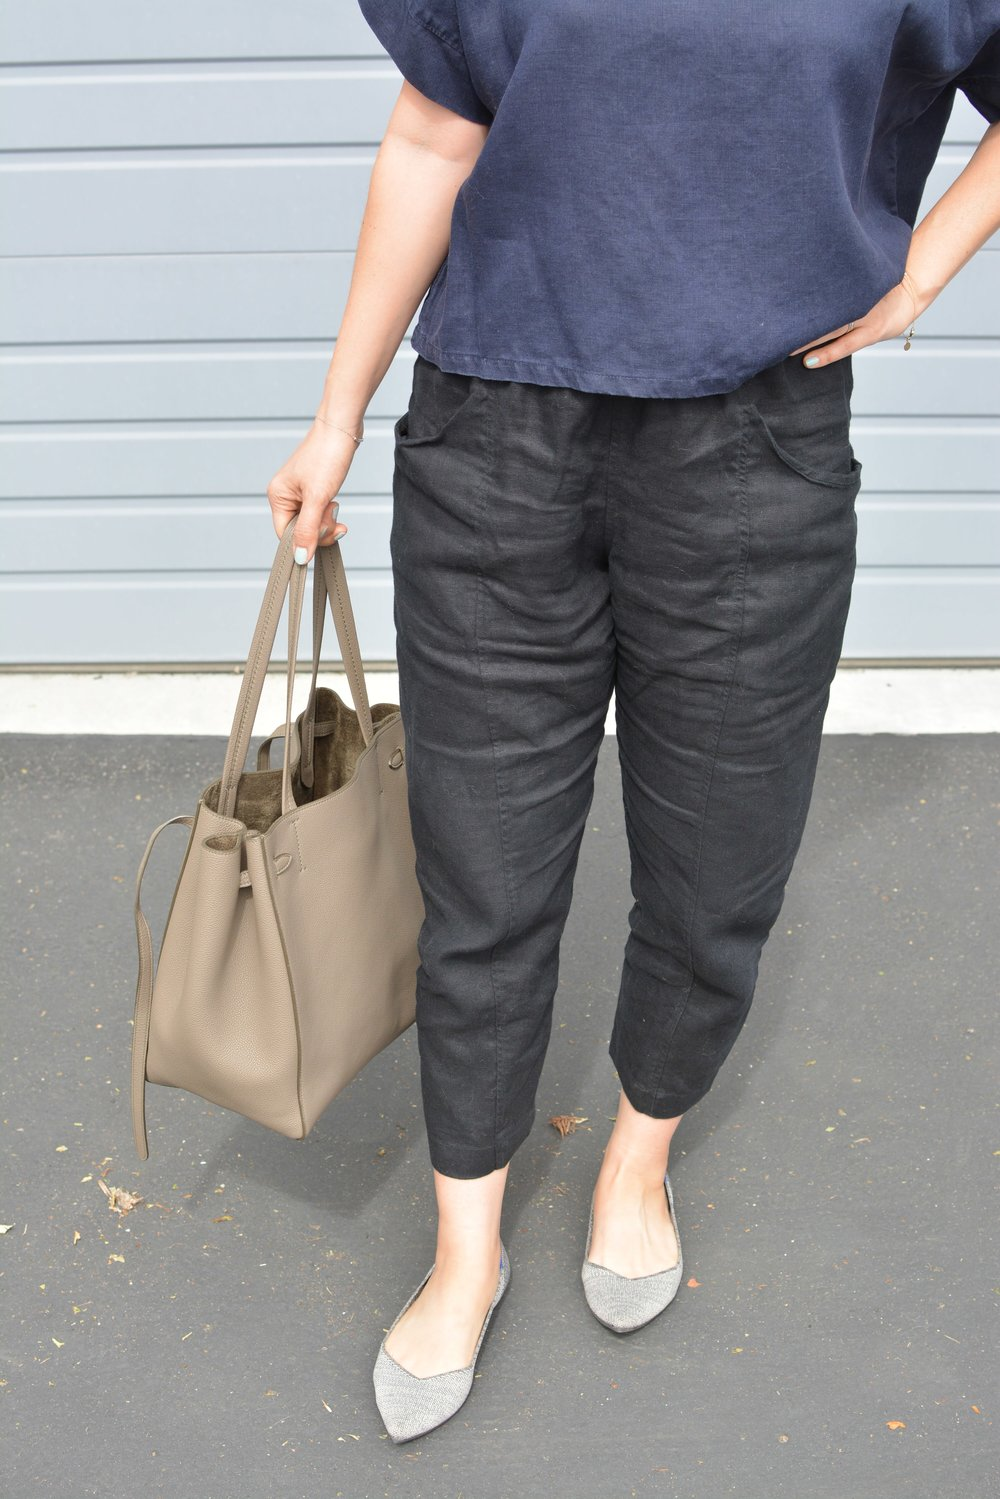 Elizabeth Suzann Review linen Clyde pants (4 of 4)-min.jpg